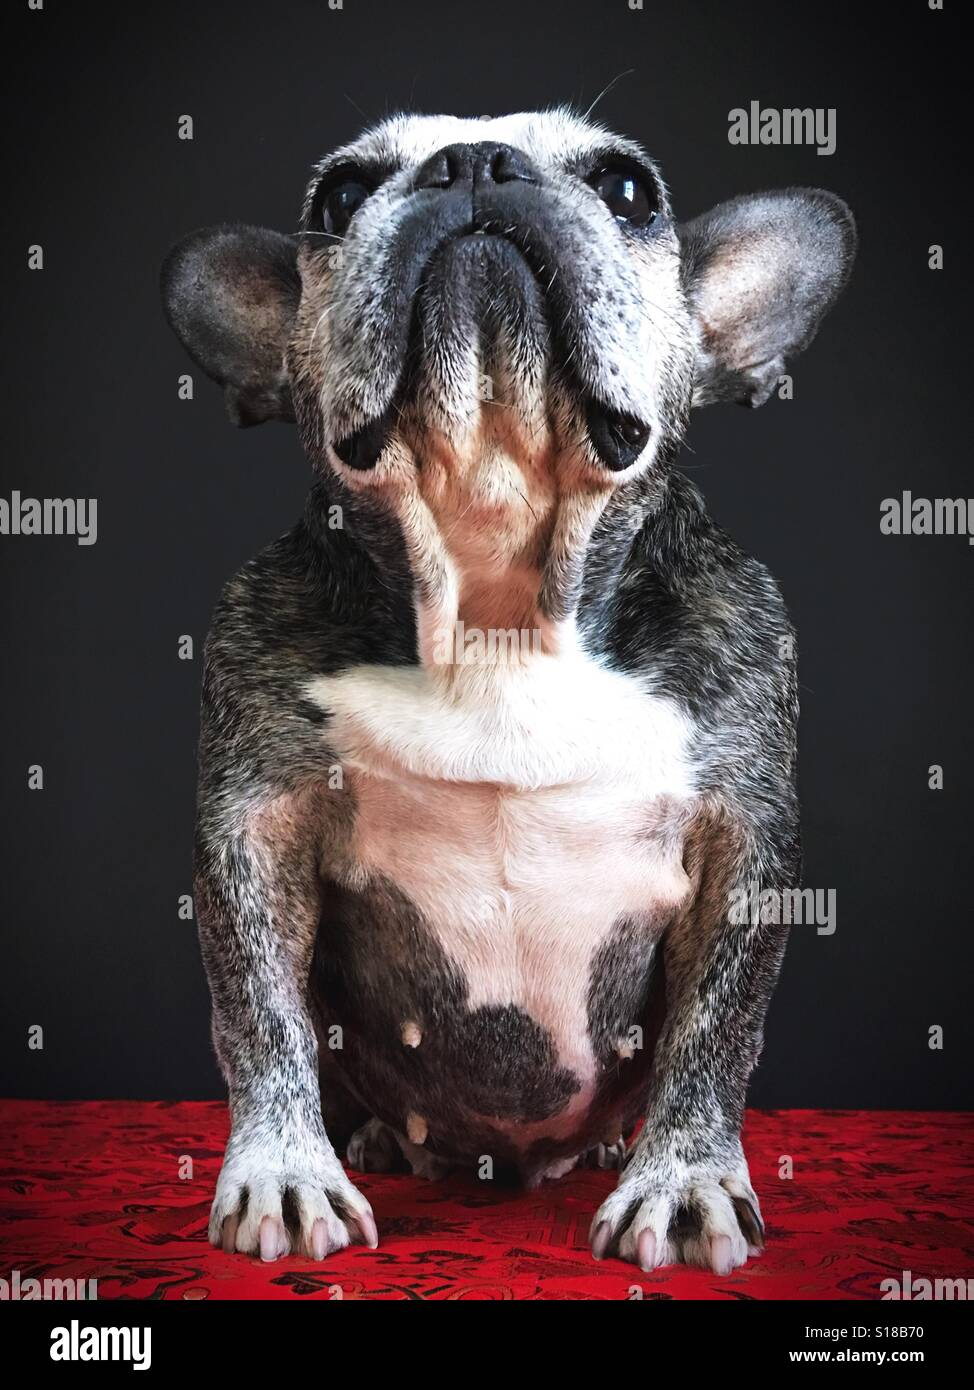 A cute old French bulldog looking up. Stock Photo